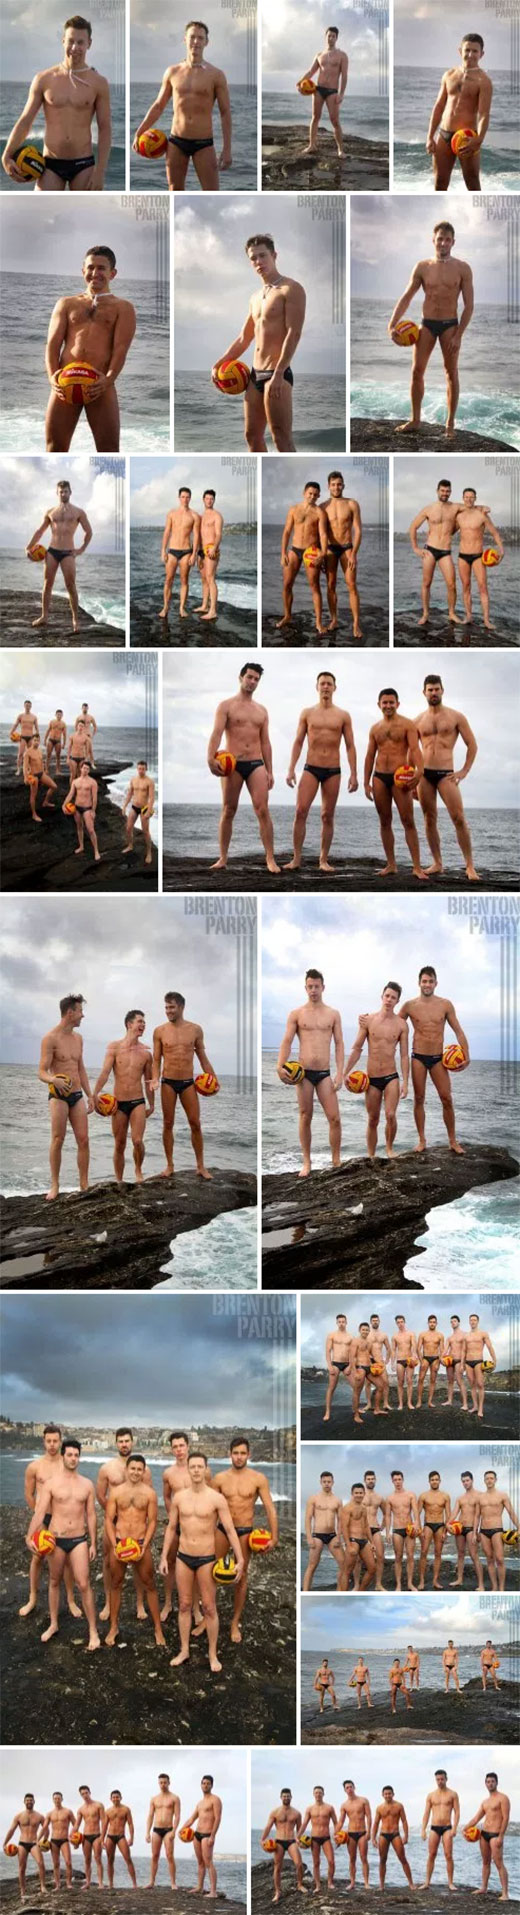 Gay Sydney Waterpolo Team in their Speedos